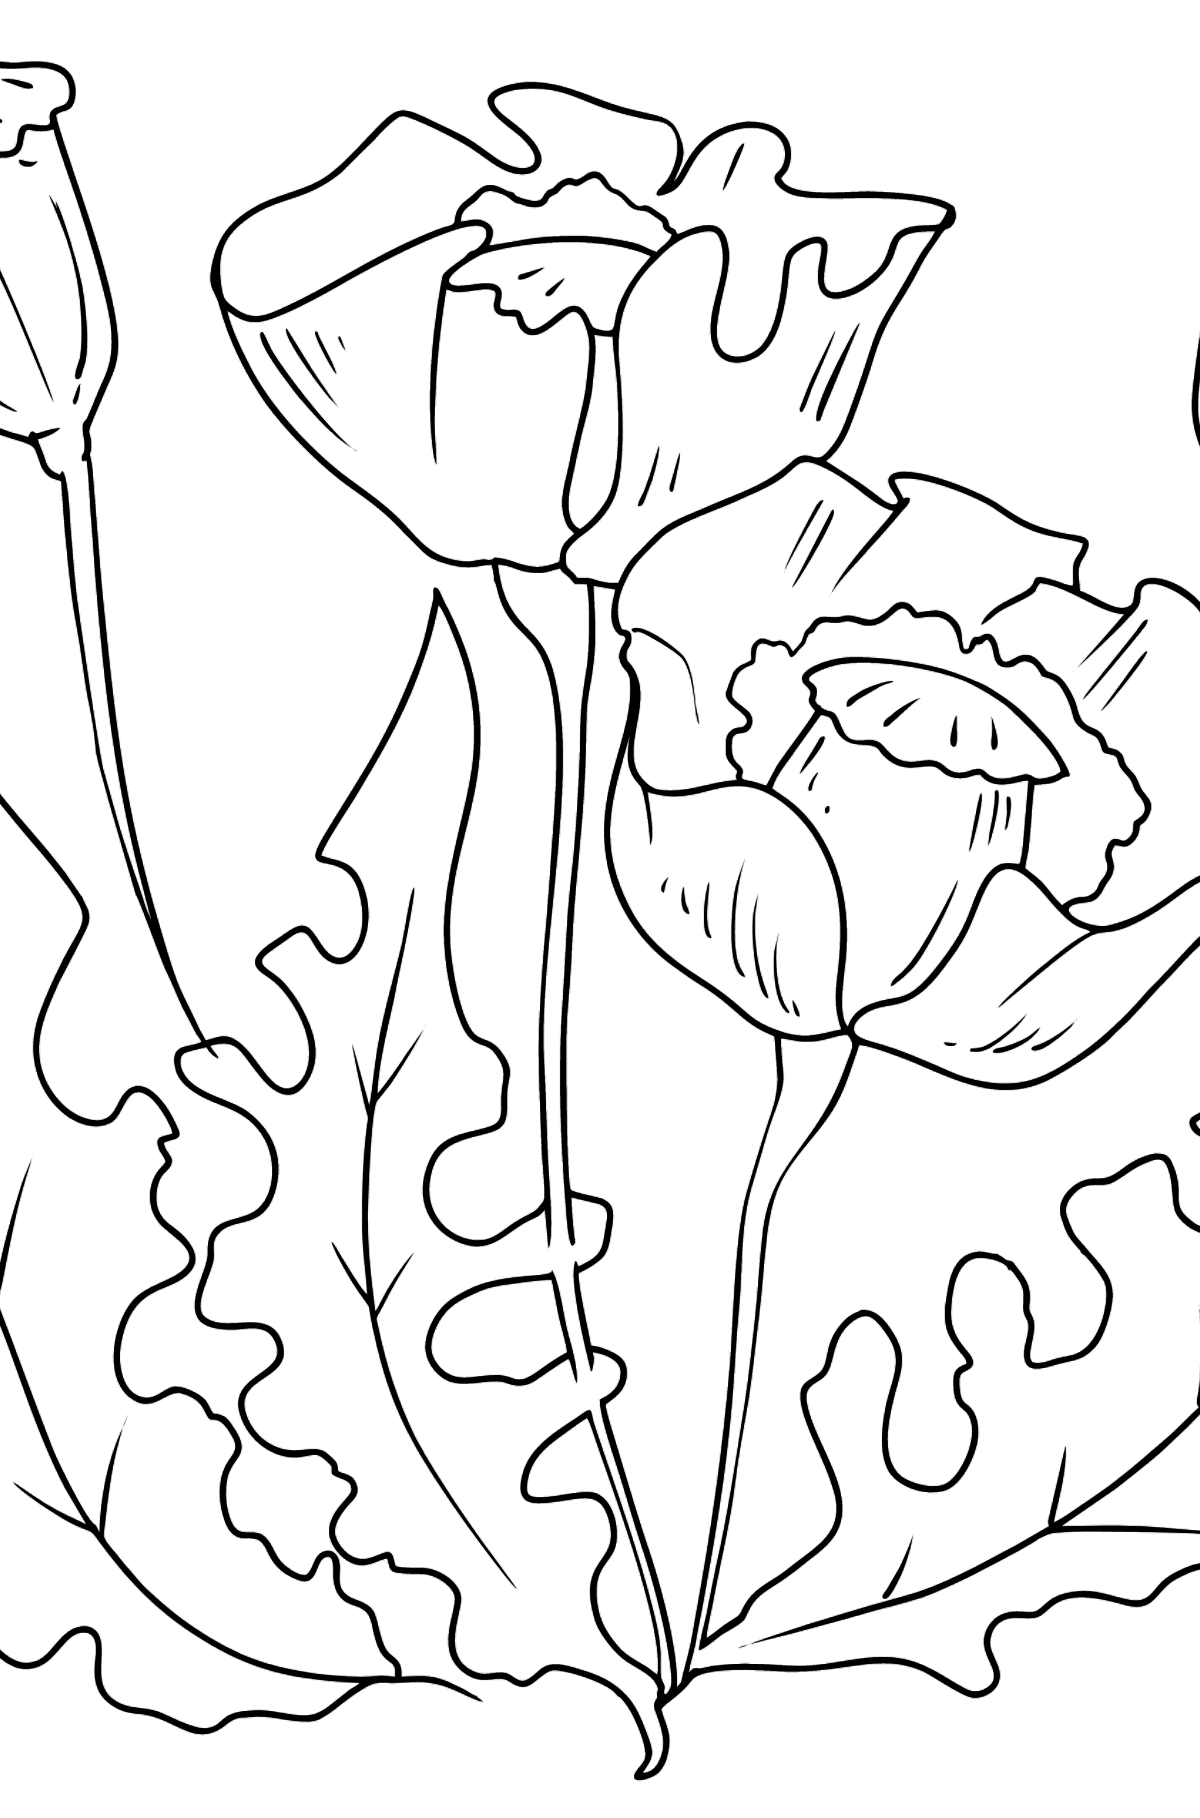 Flower Coloring Page - Beautiful Poppies - Coloring Pages for Kids